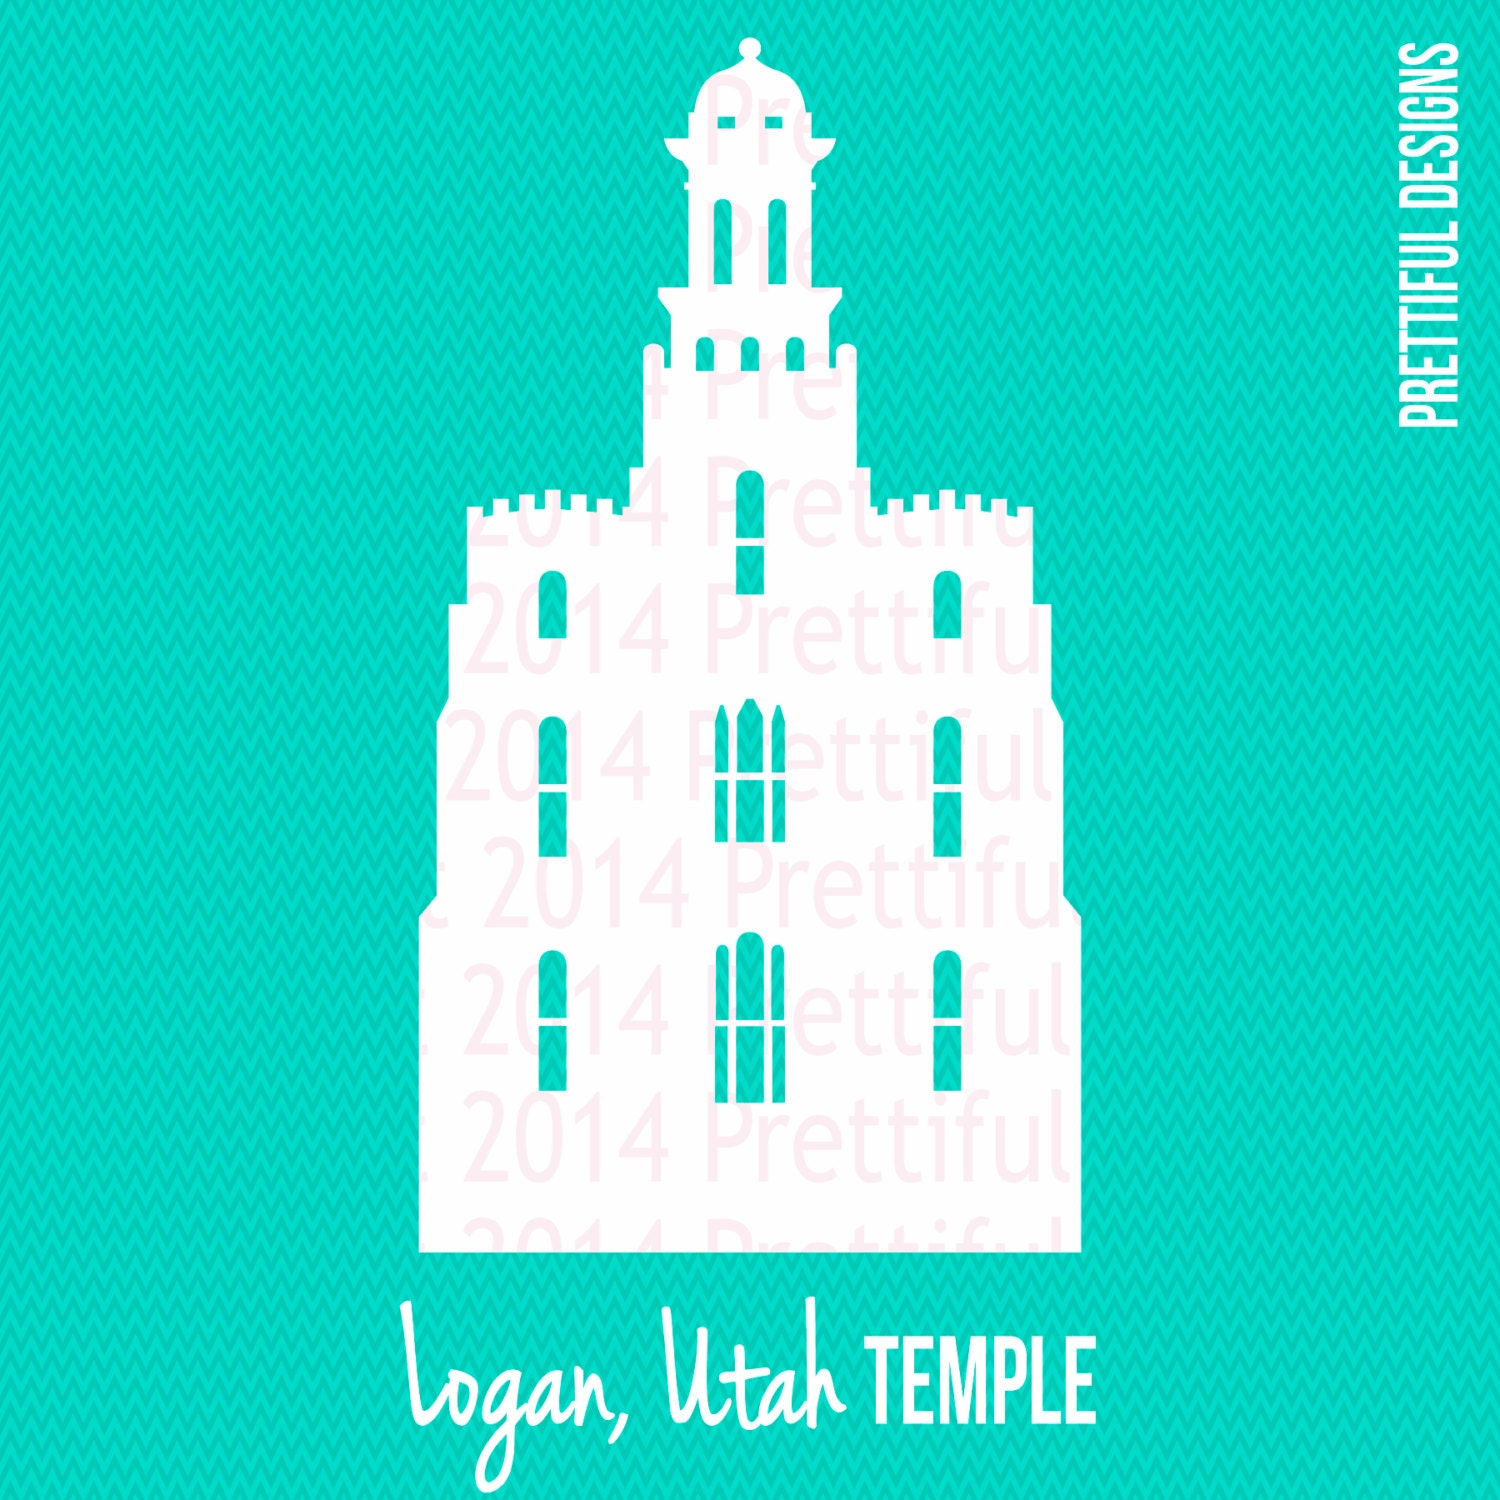 logan utah temple silhouette lds mormon clip art png eps svg rh etsy com lds temple clipart black and white lds clipart temple family